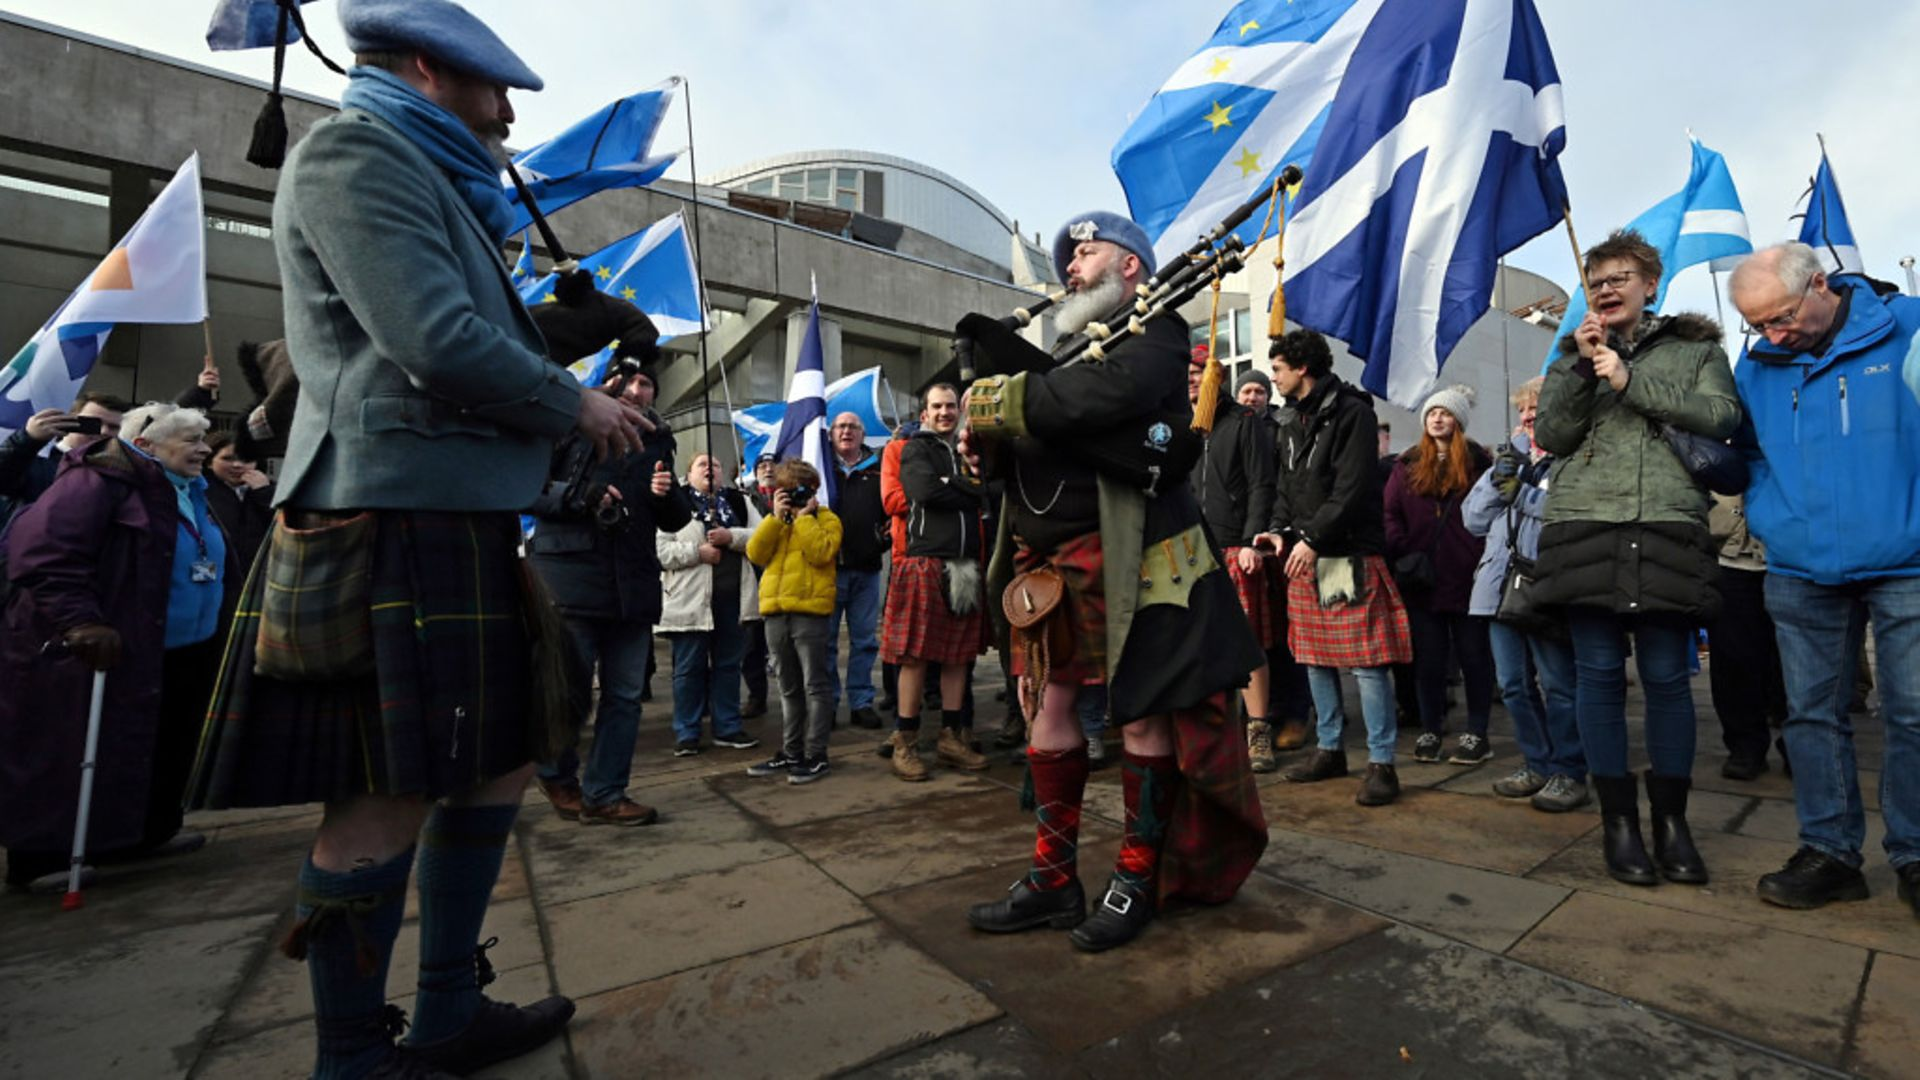 COMMON CAUSE? Saltire flags with EU stars on them are flown at a pro-Scottish independence, anti-Brexit demonstration outside Holyrood - Credit: Andy BUCHANAN / AFP